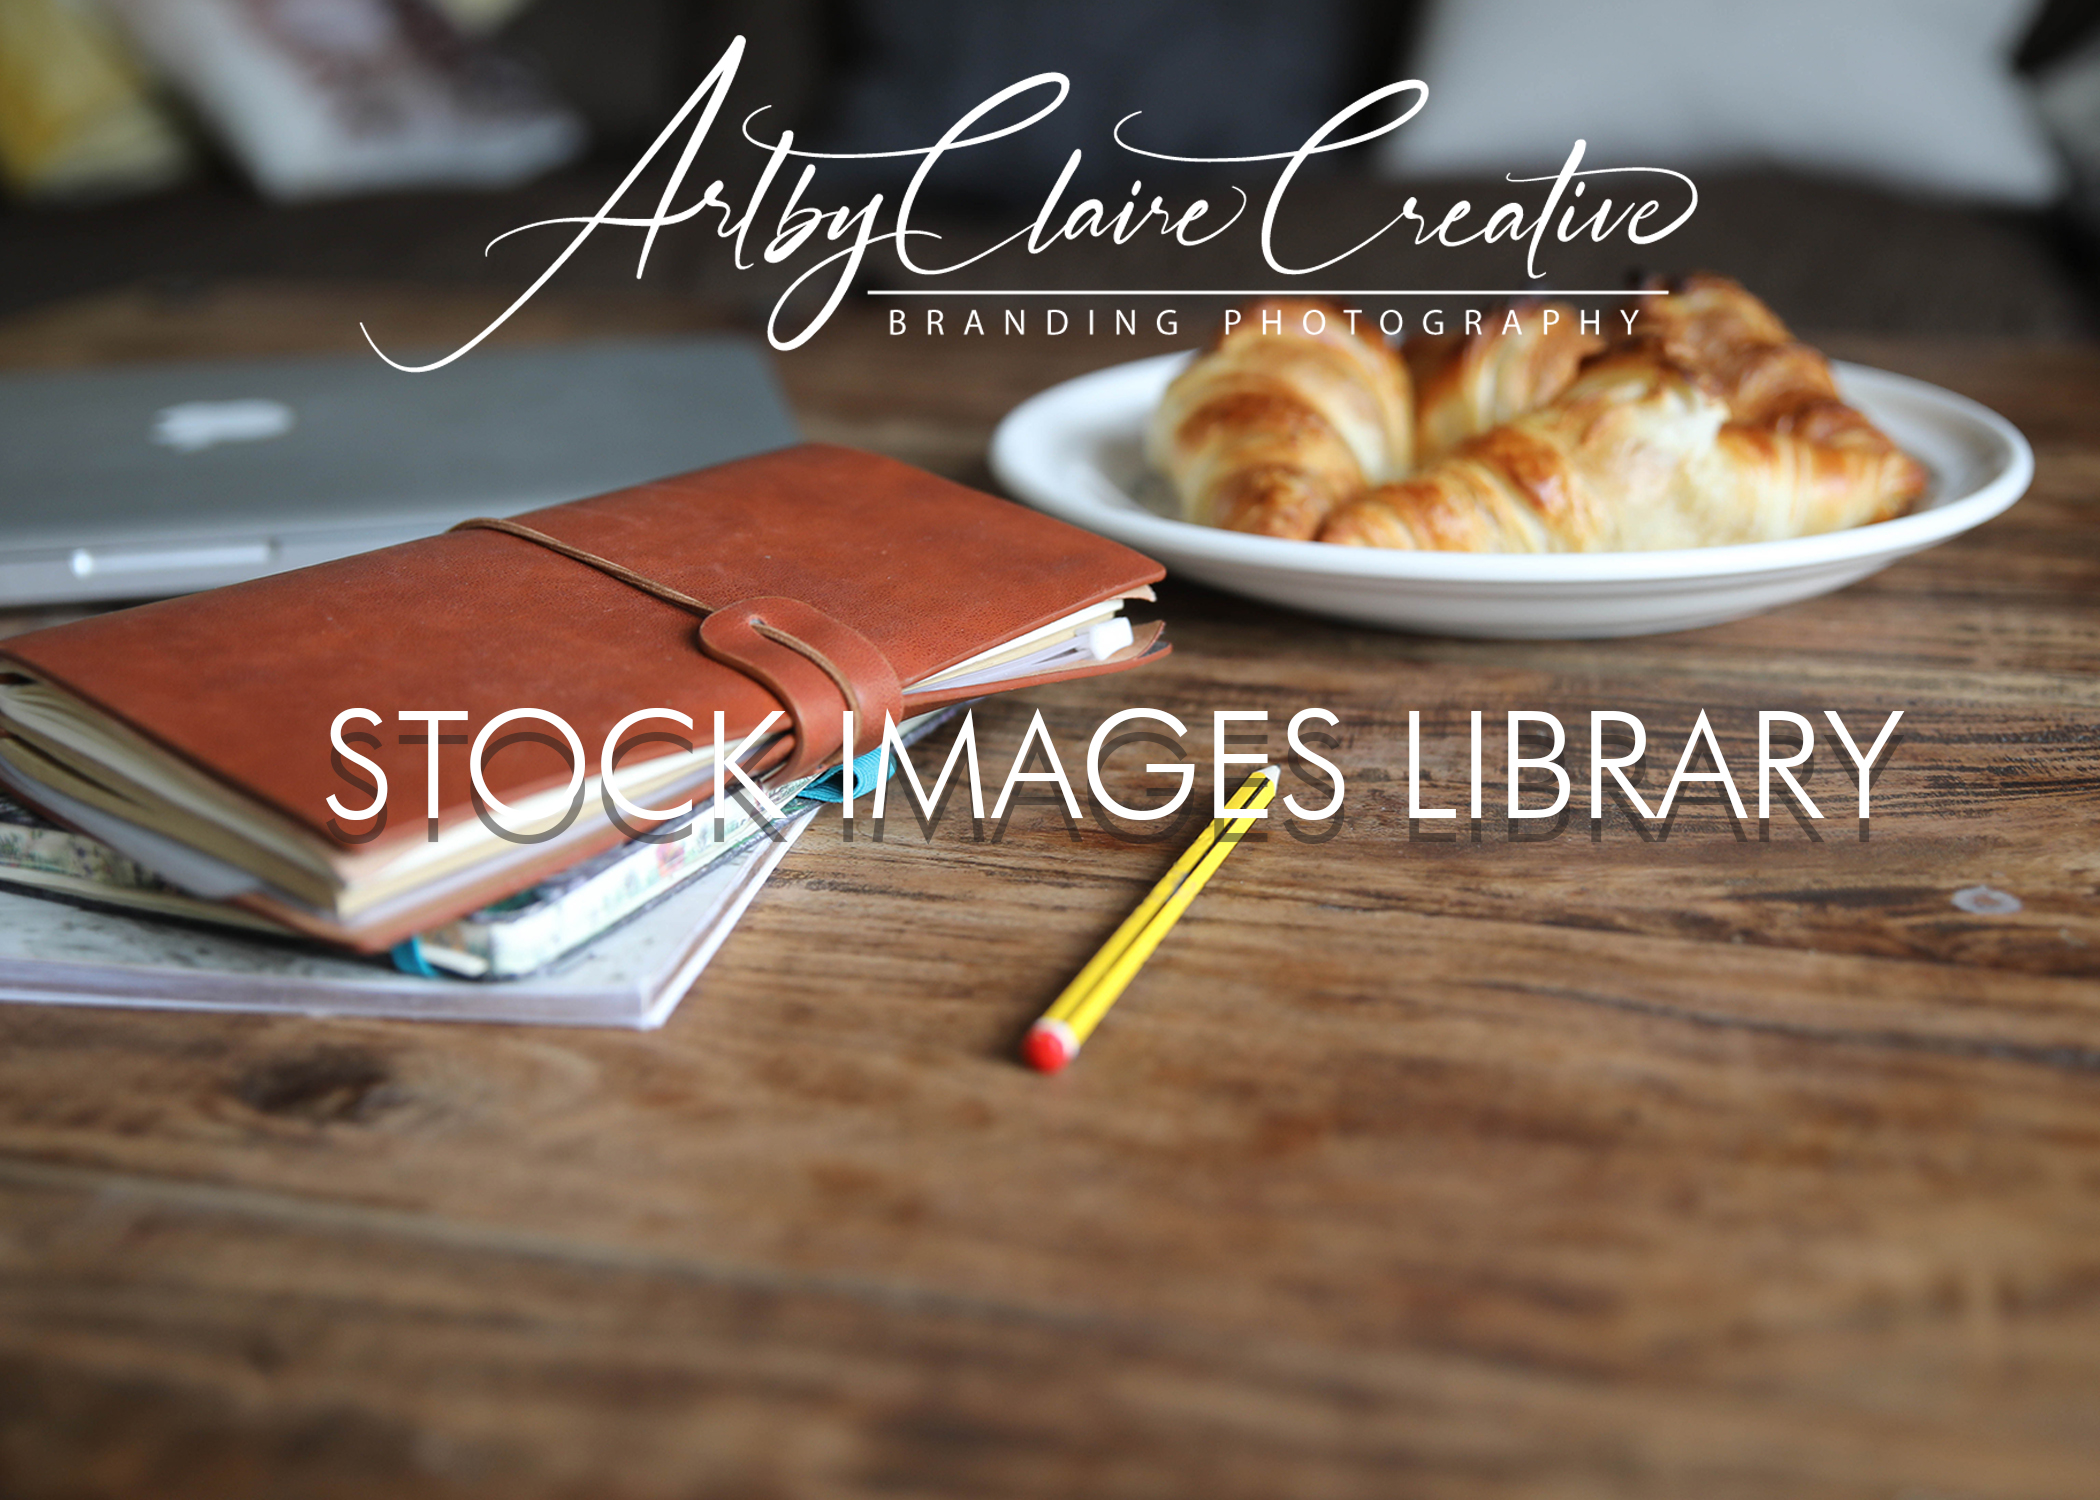 ArtbyClaire Creative Photography Stock Library images, Hertfordshire